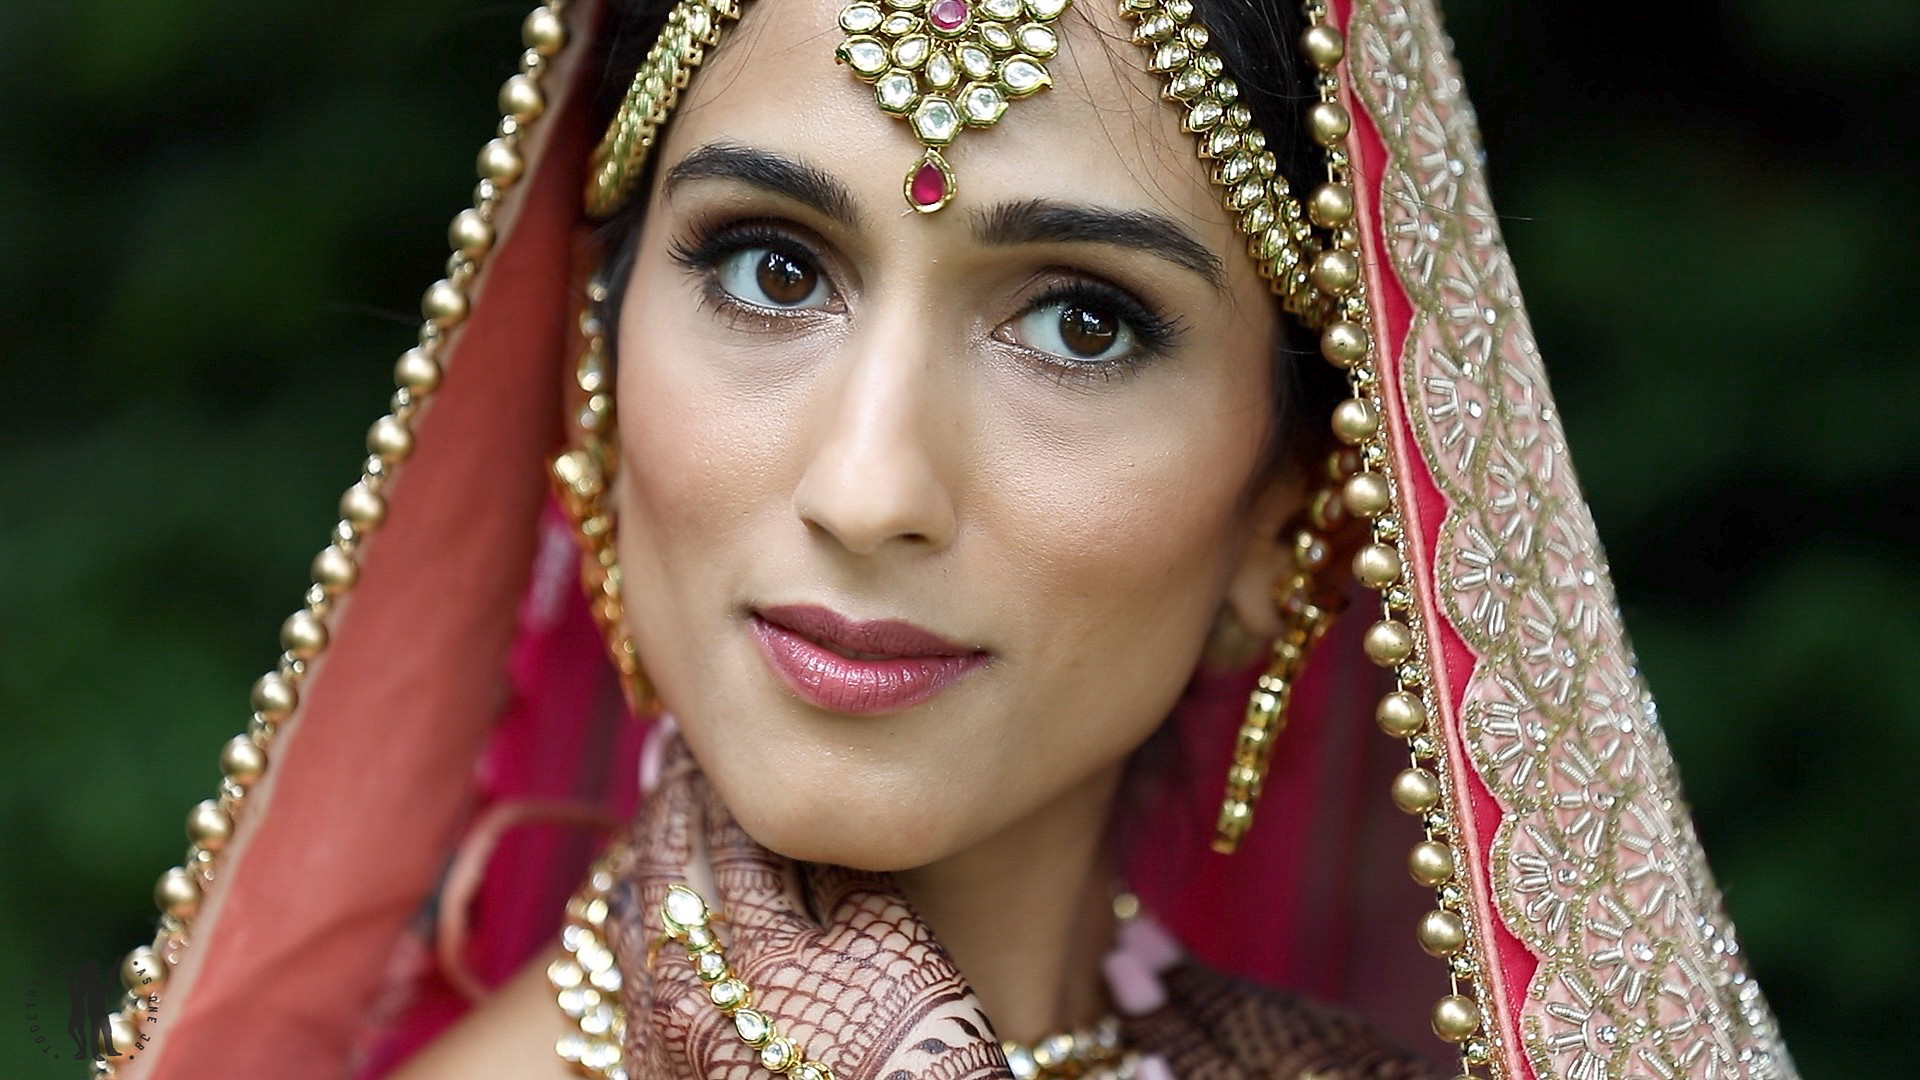 Indian Bride with Maang tikka-1.jpg